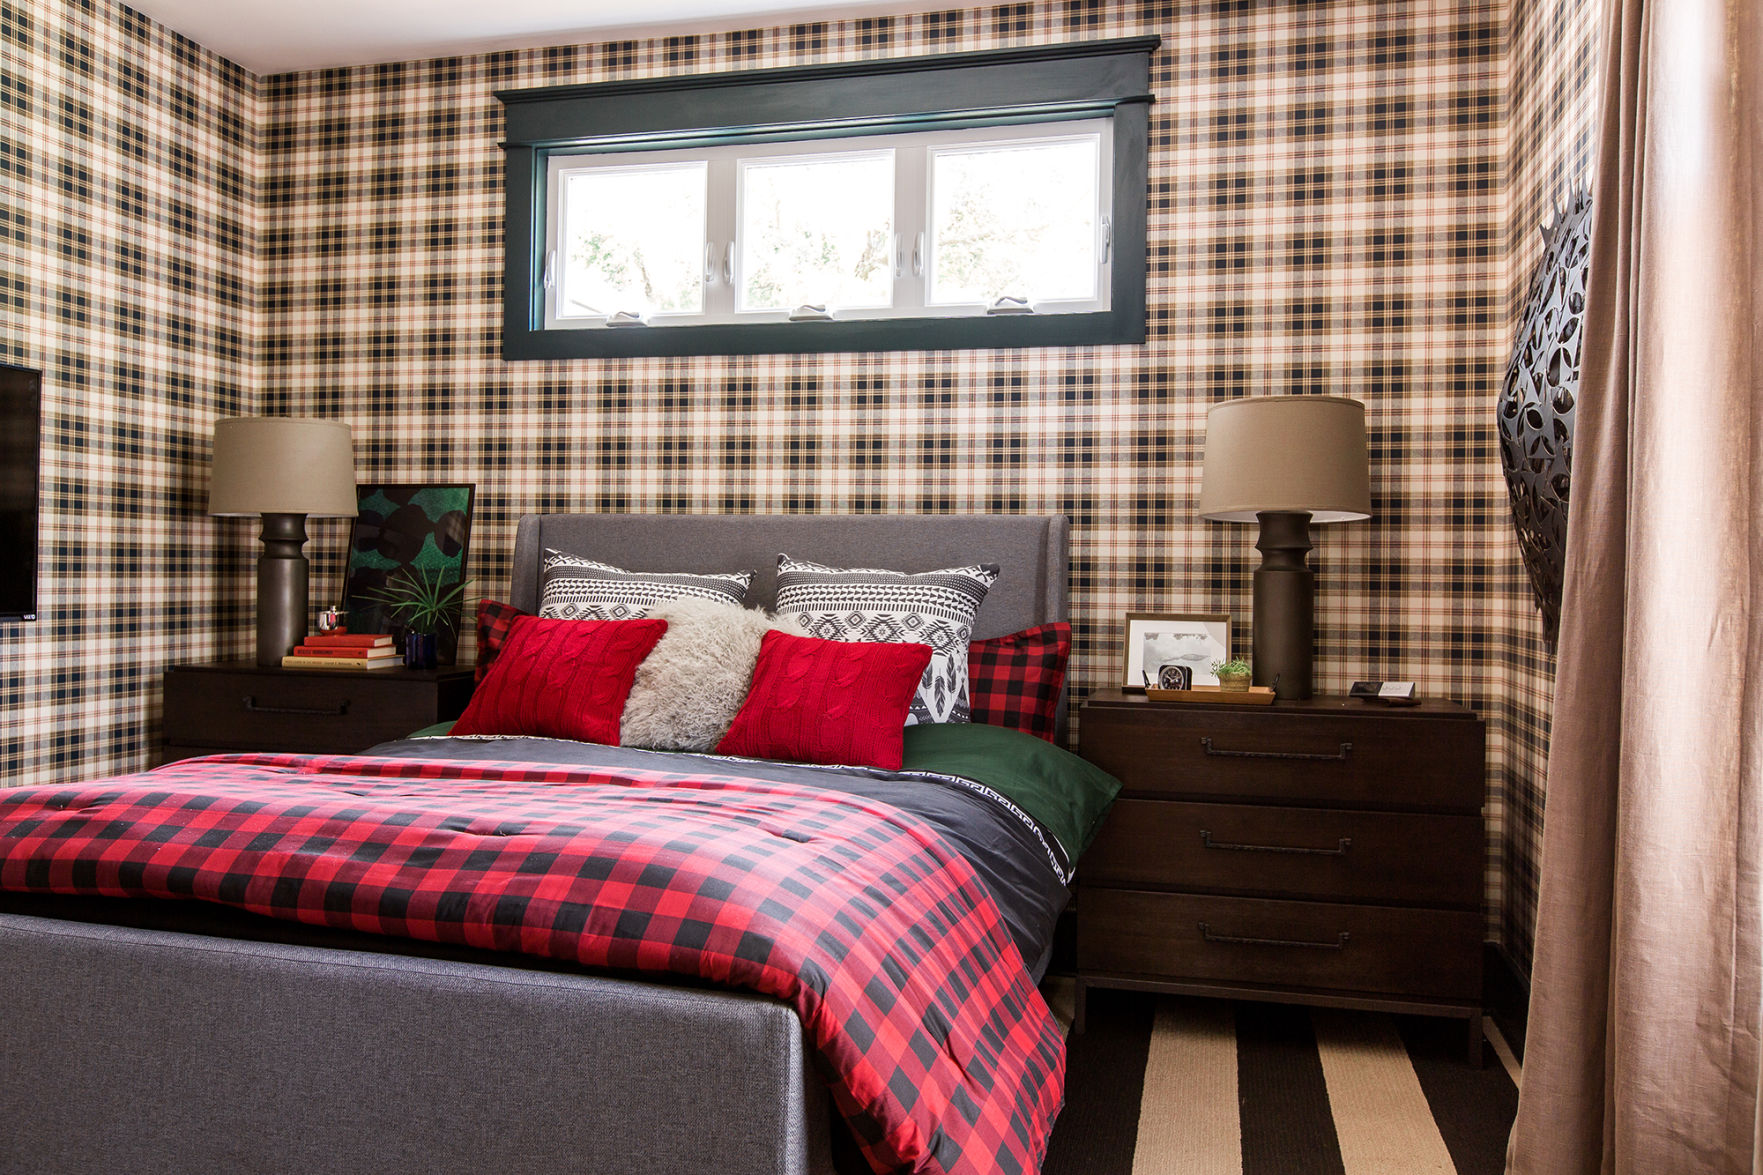 Hgtv dream home nightmare - As Seen On Tv Hgtv S Dream Home Offers 10 Ways To Get Artistic With Home